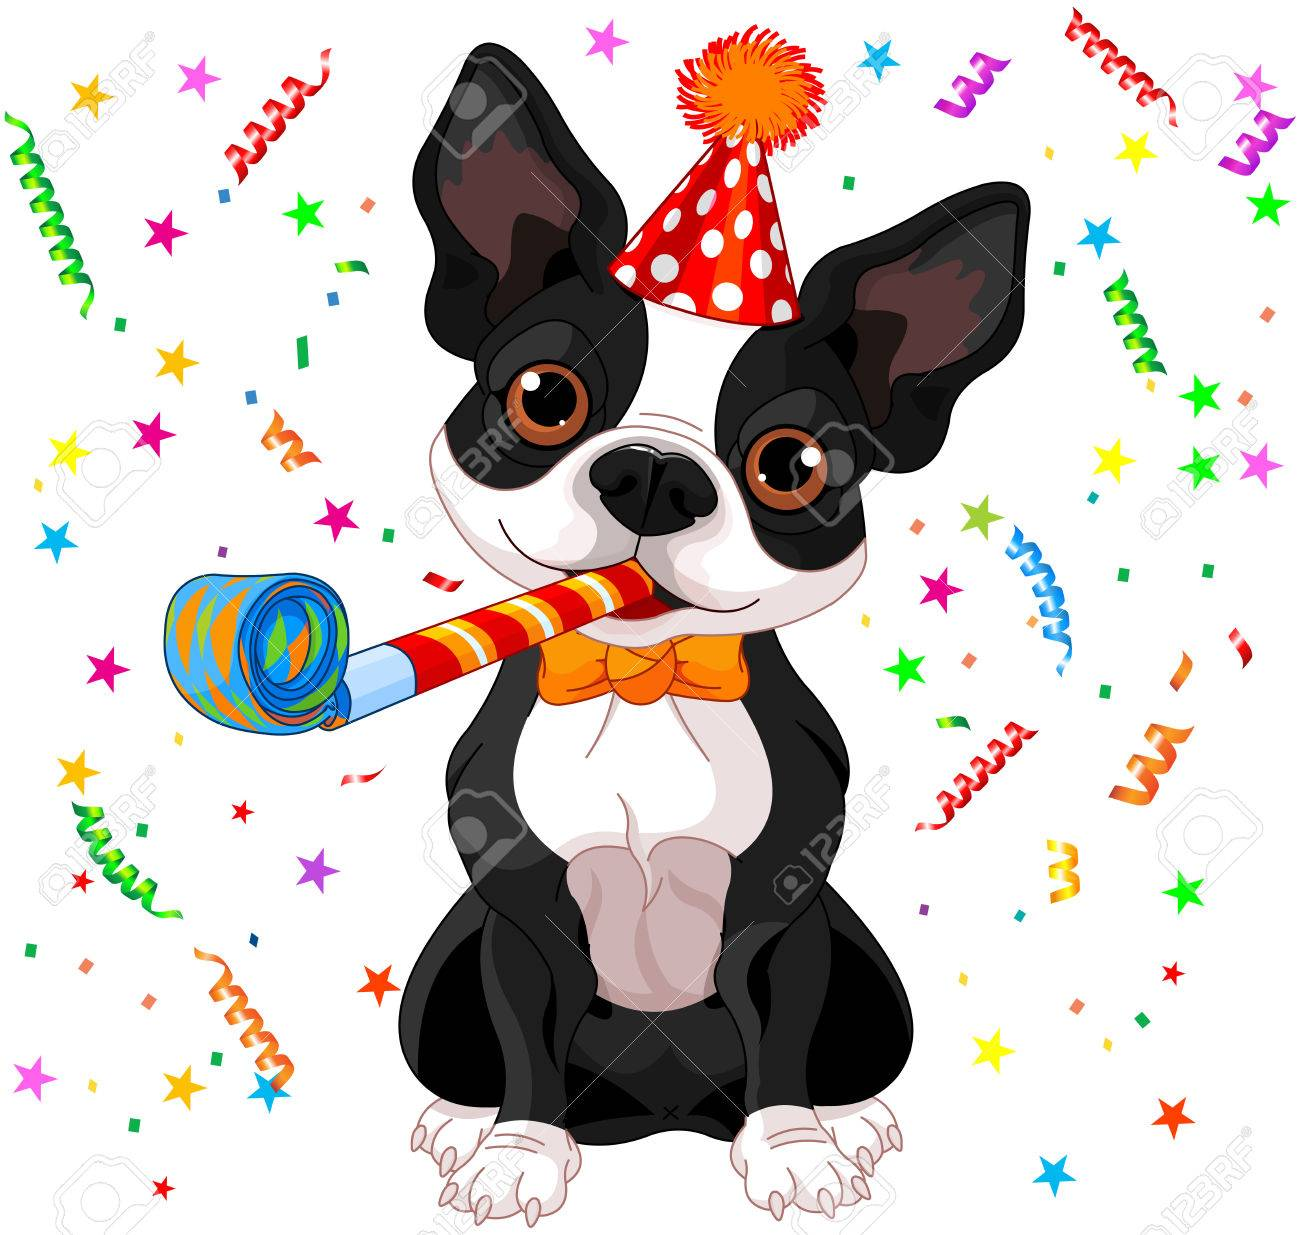 Chiot qui fait tomber la barrière lors de nos absences - Page 2 35588778-illustration-of-cute-boston-terrier-celebrating